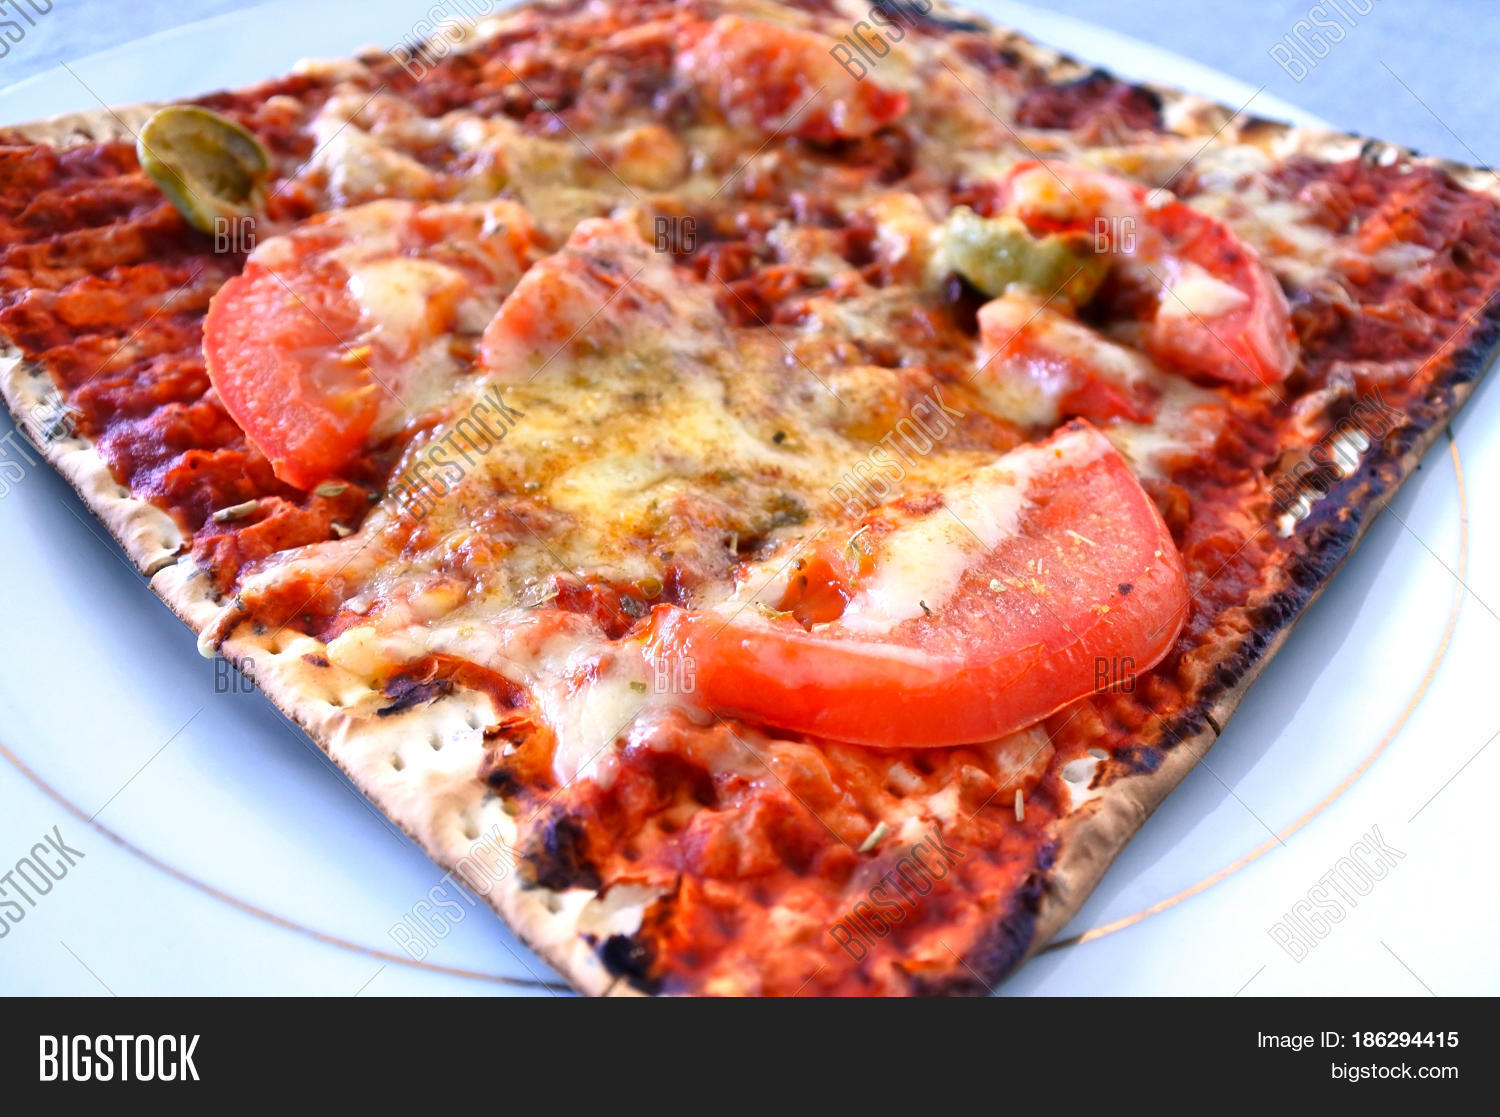 Matzo Pizza Food Jewish Holiday Image & Photo | Bigstock